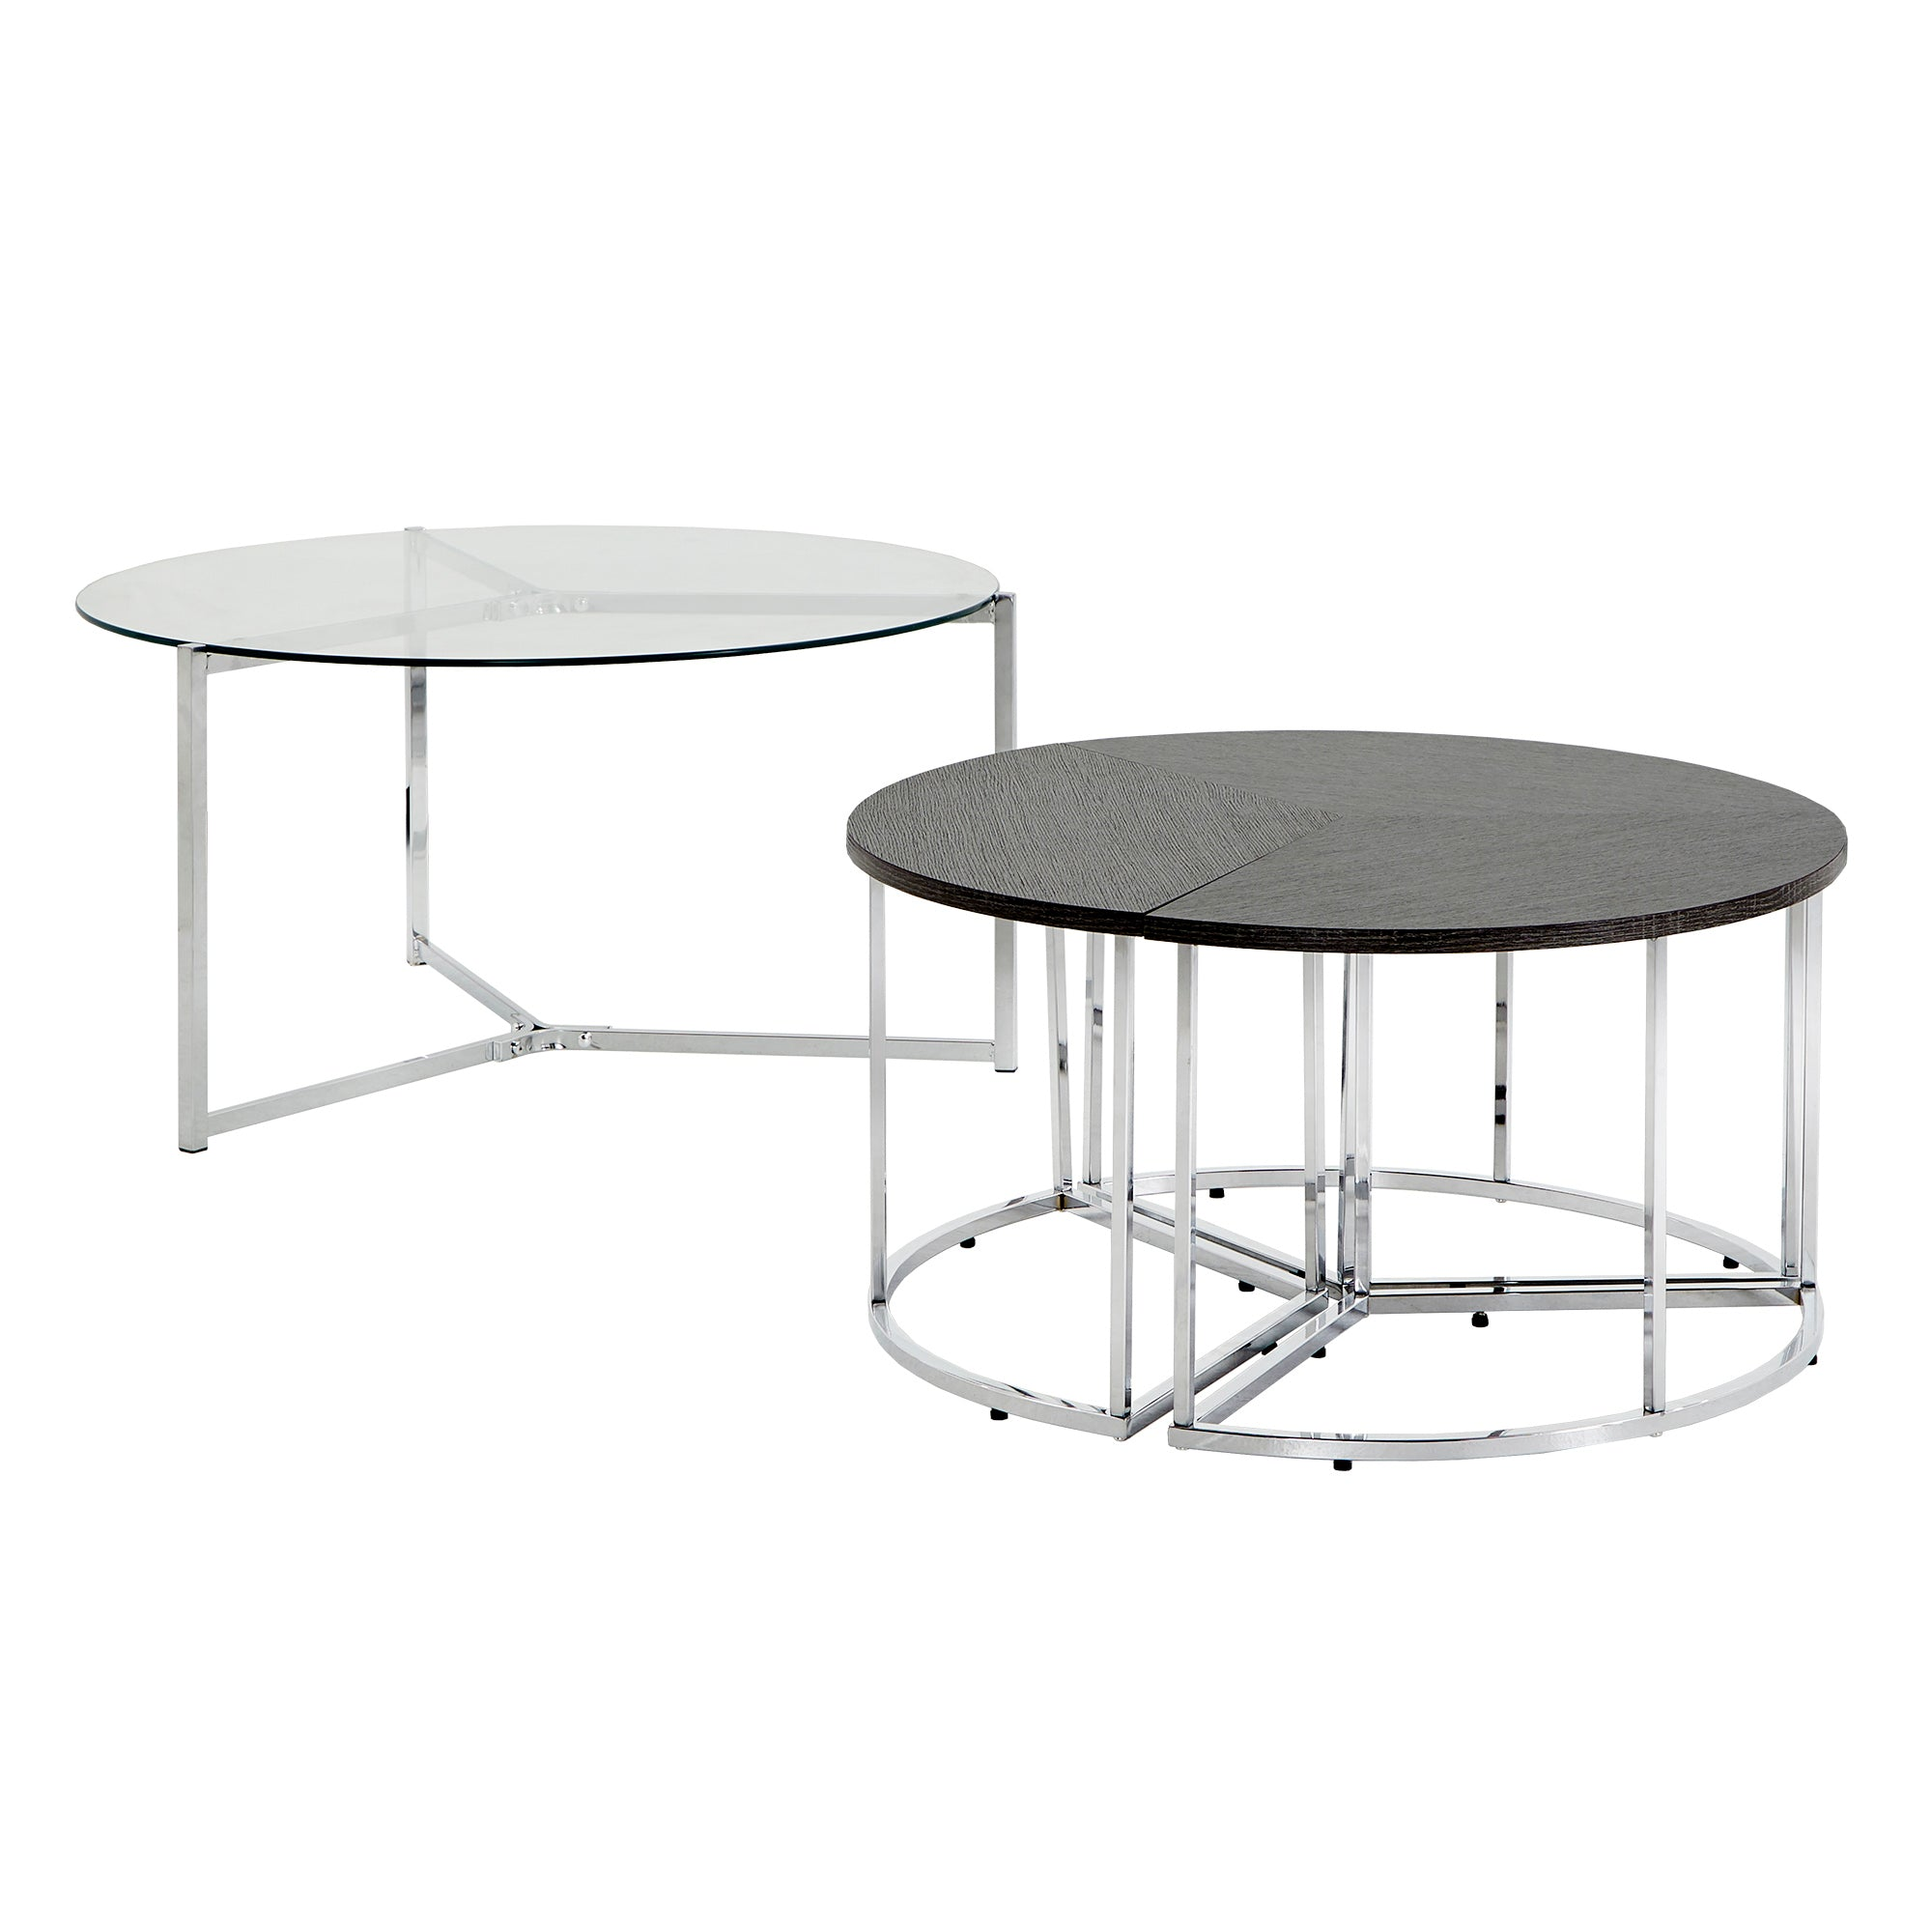 Chrome Finish Glass Top Coffee and End Table Set - Nesting Coffee Table